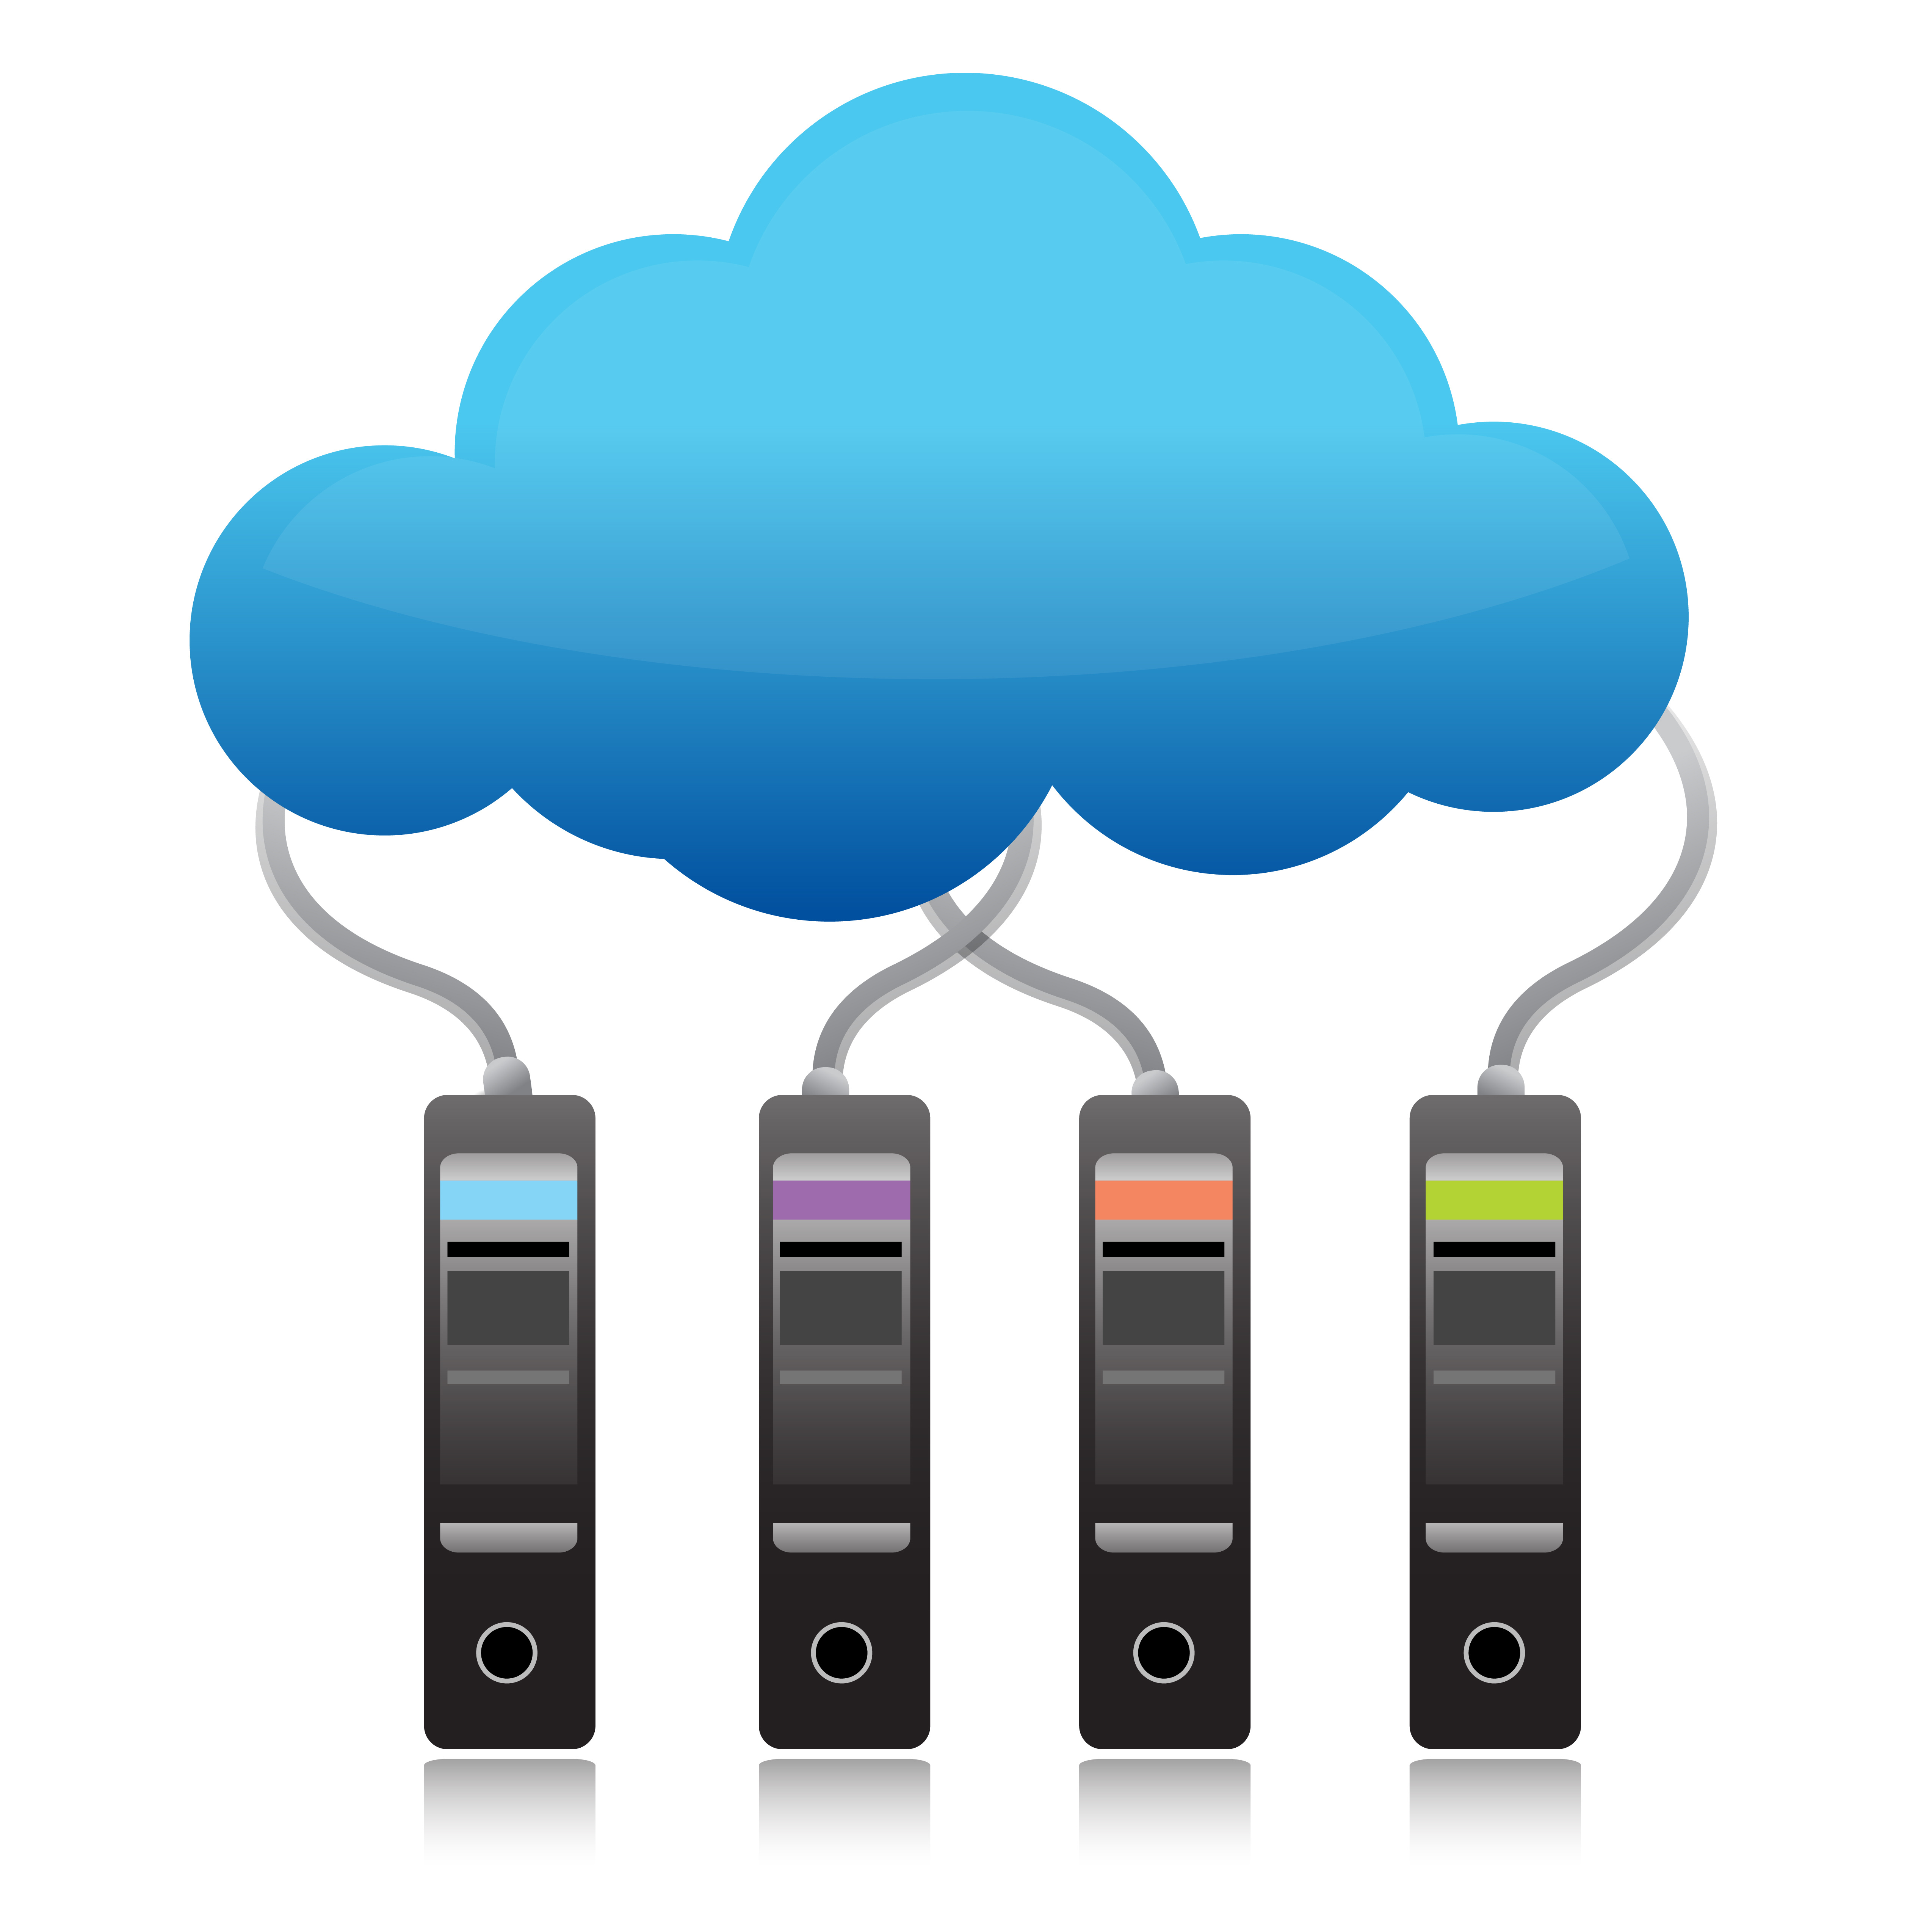 Desktops connected to the cloud